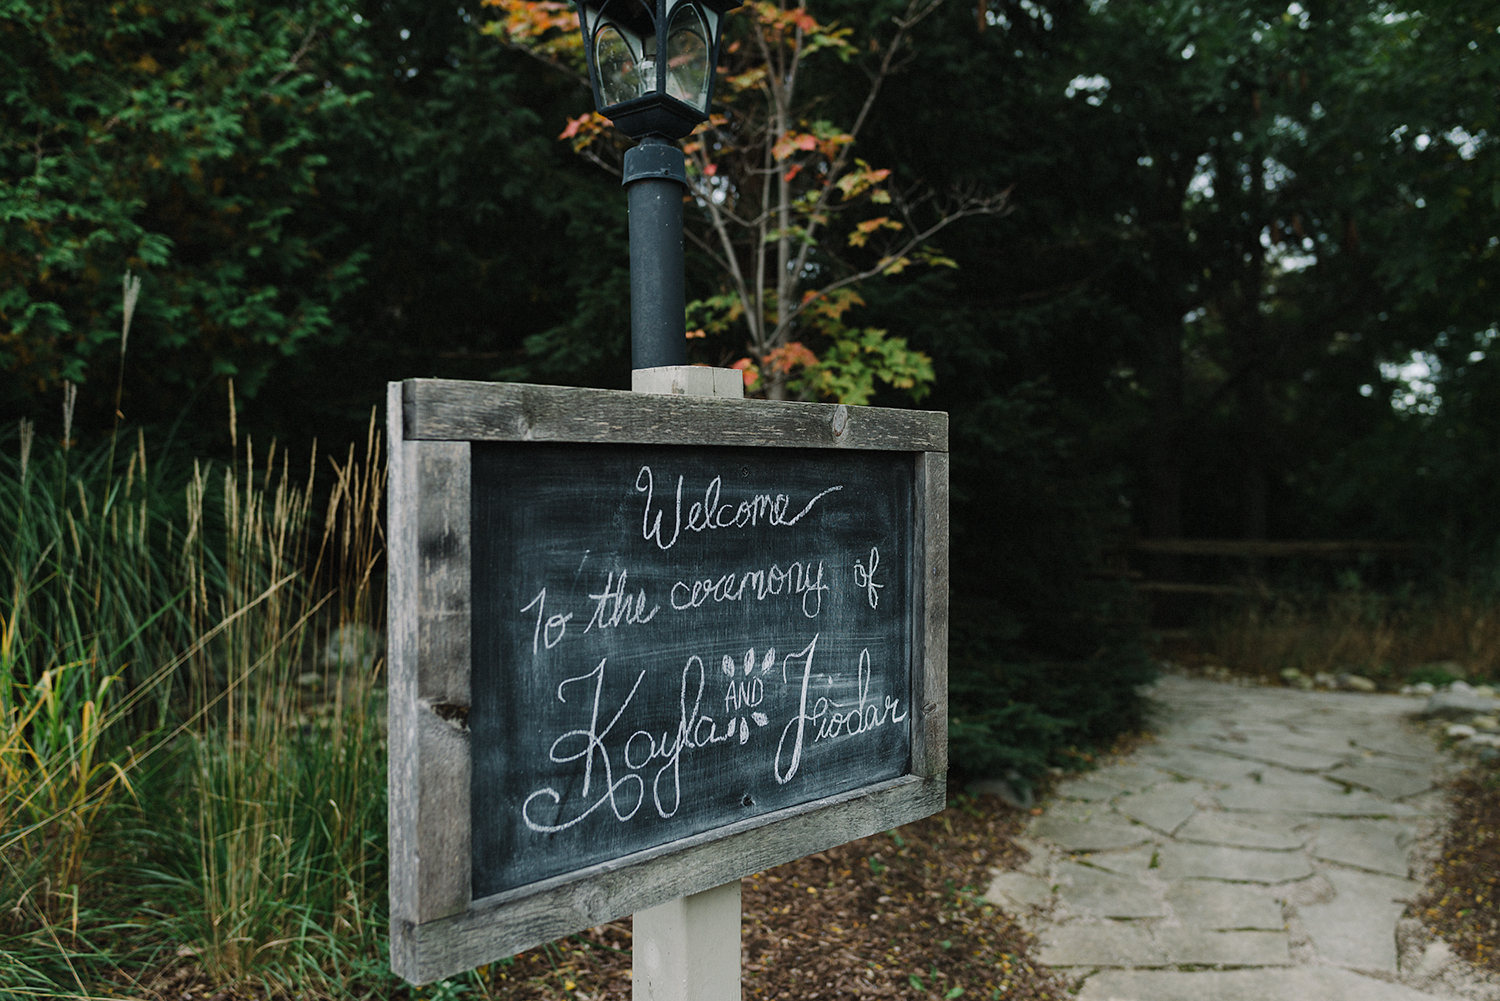 bellamere-winery-ceremony-in-field-rustic-chalkboard-signs-toronto's-best-wedding-photographers-candid-documentary-style-photography-london-ontario-winery-wedding-inspiration.jpg